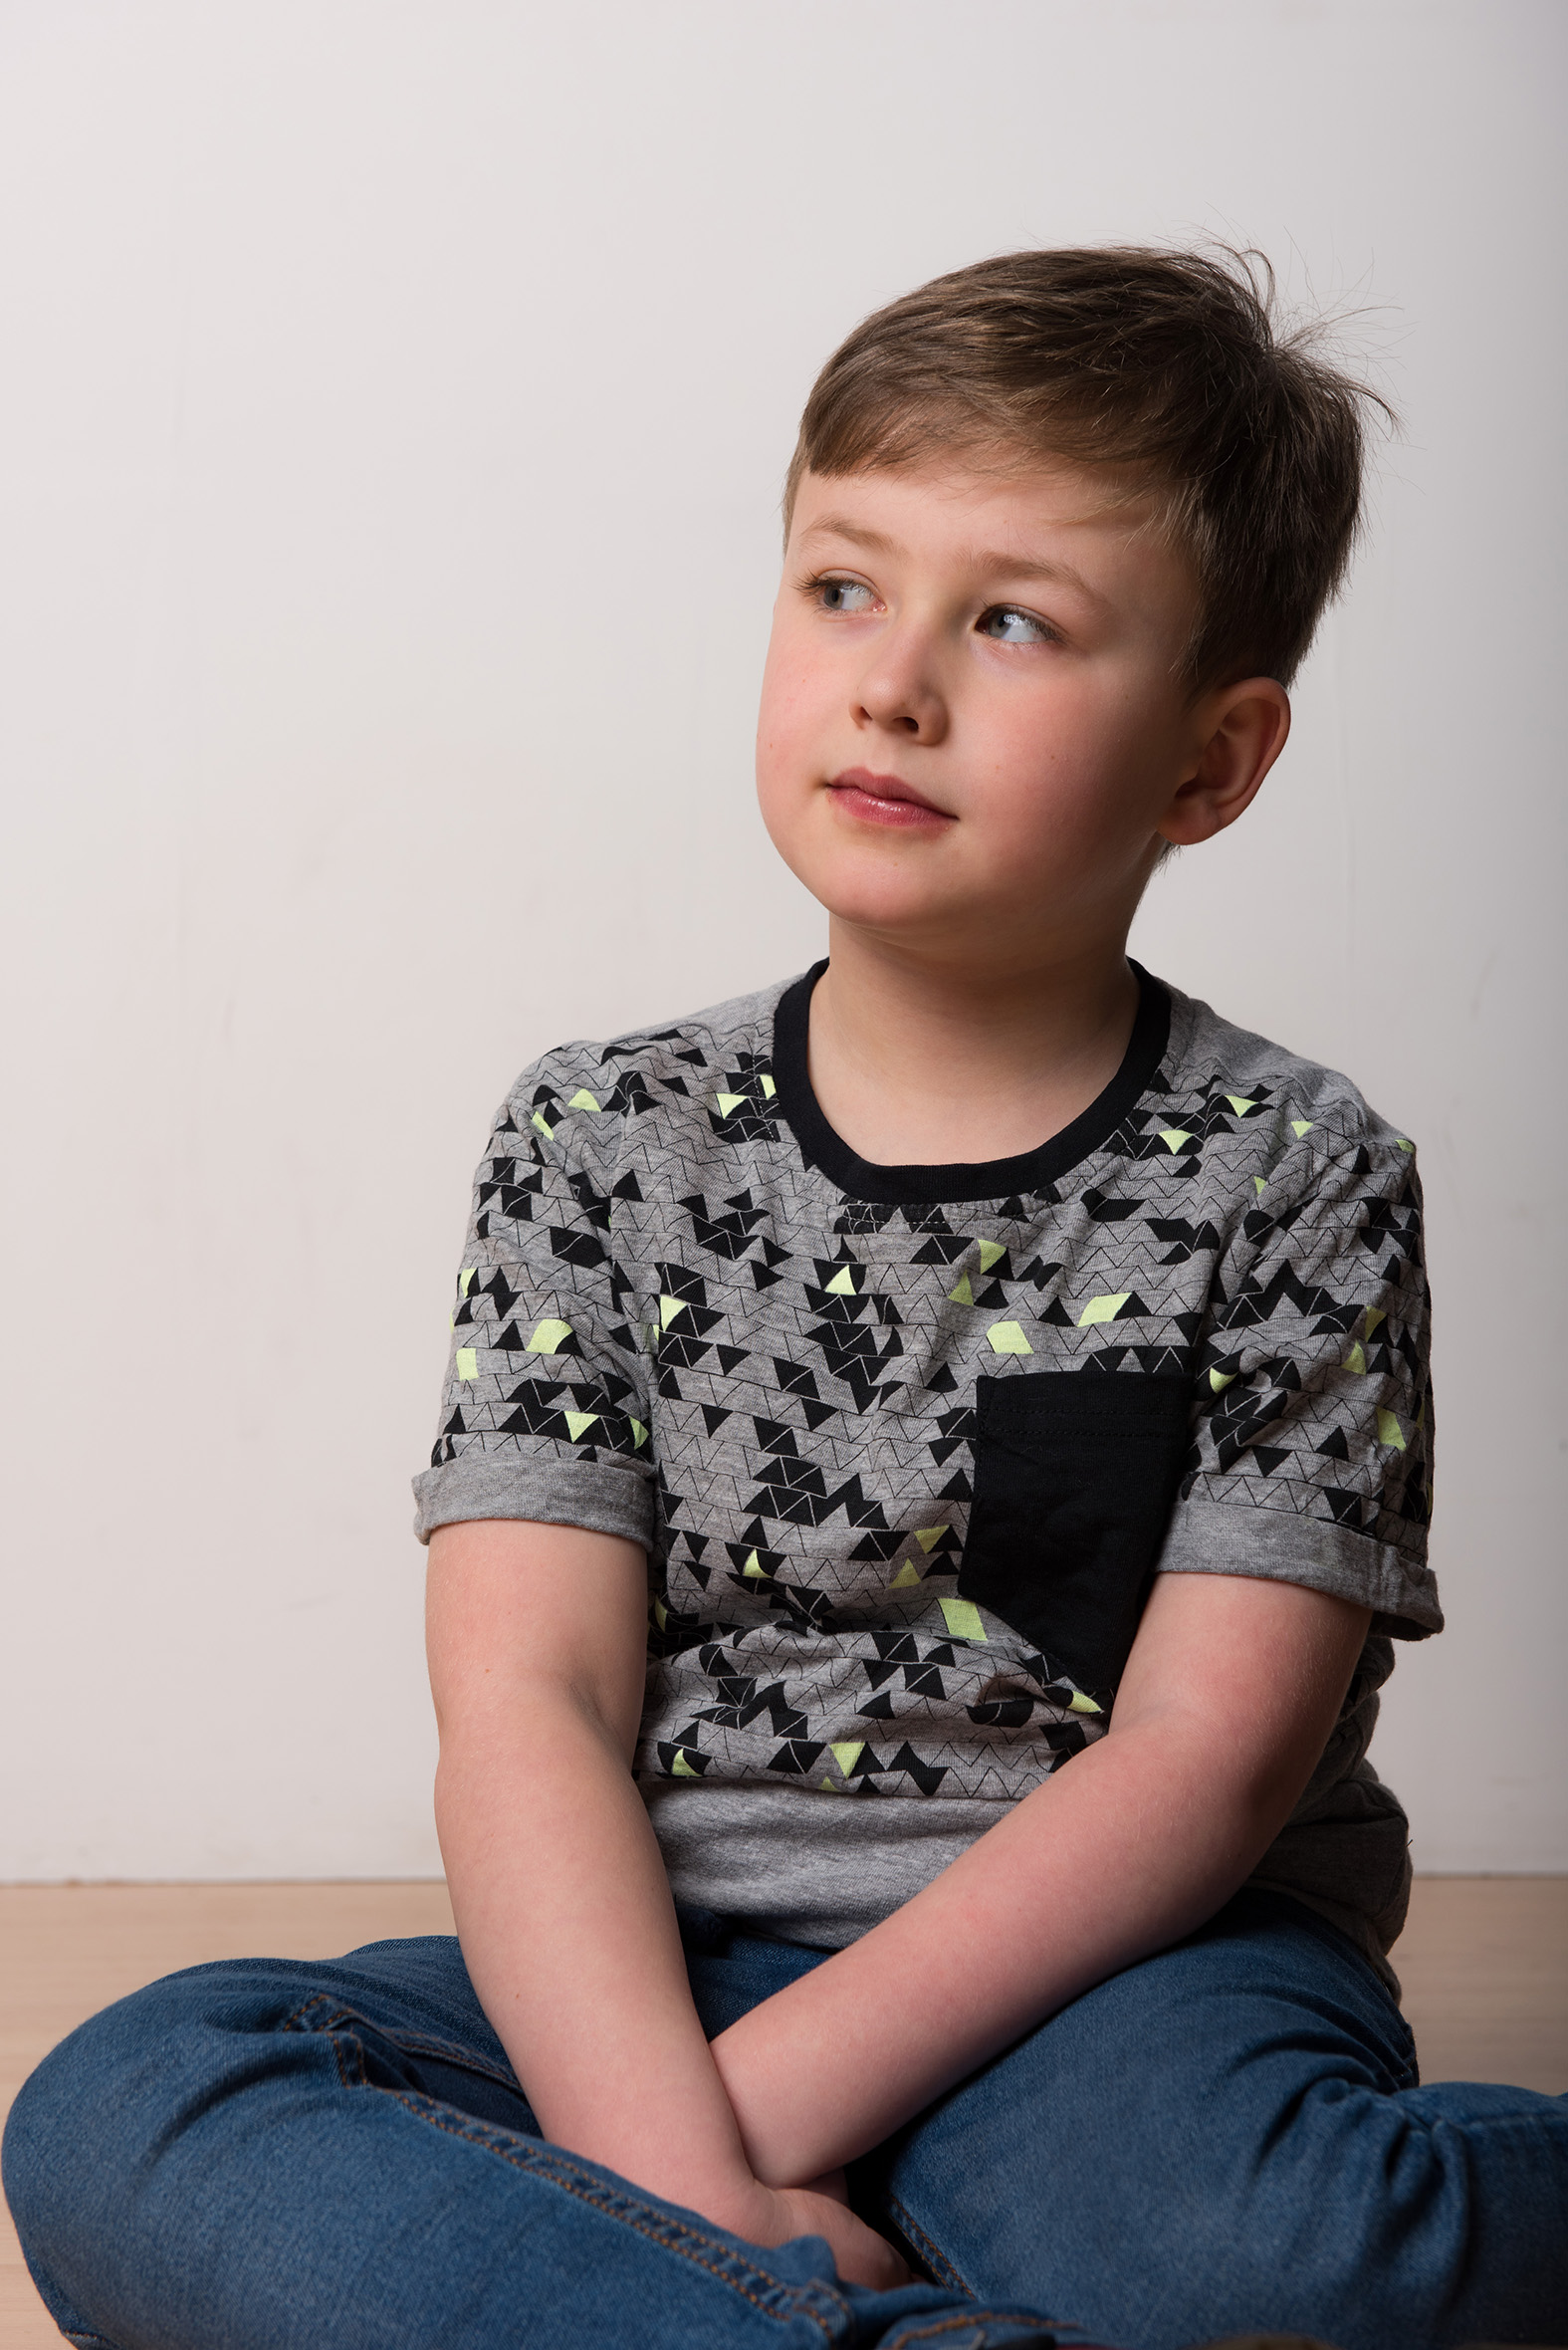 Stamford, Cerebral Palsy, Zebedee Management, disabled, model agency, disability, Boy (6)